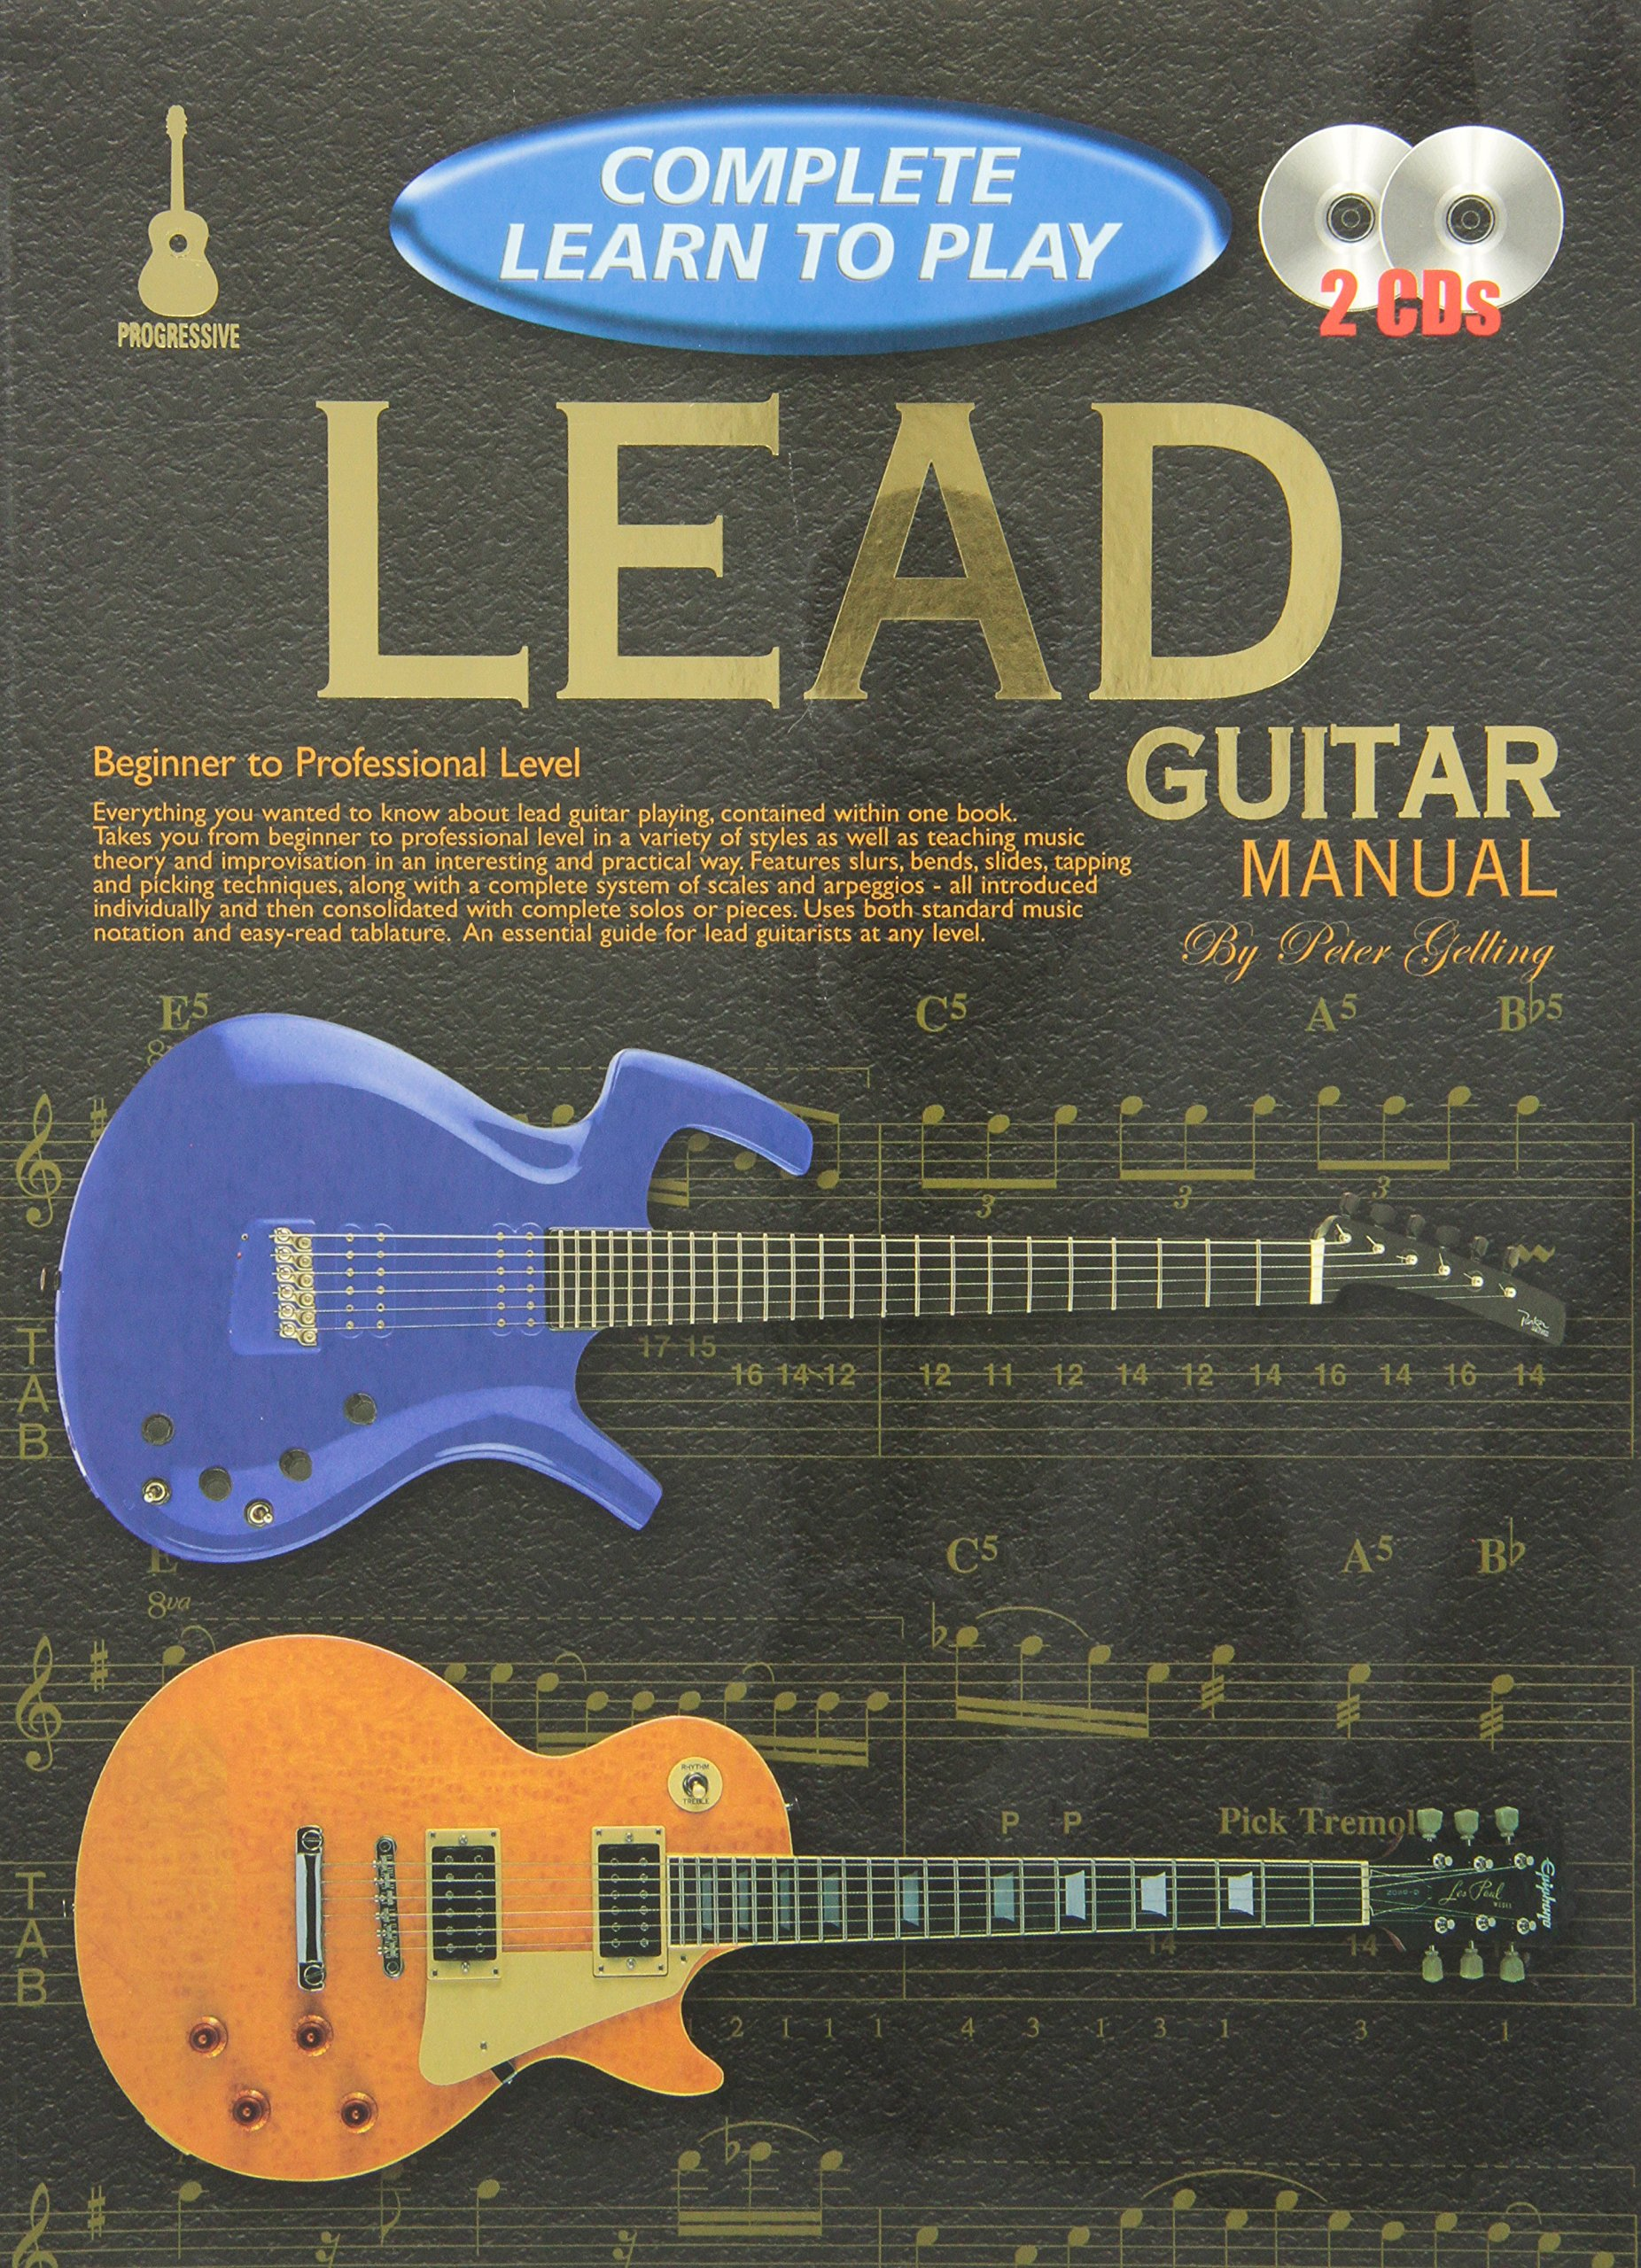 CP69319 - Progressive Complete Learn to Play Lead Guitar Manual: Peter  Gelling: 9781864693195: Amazon.com: Books